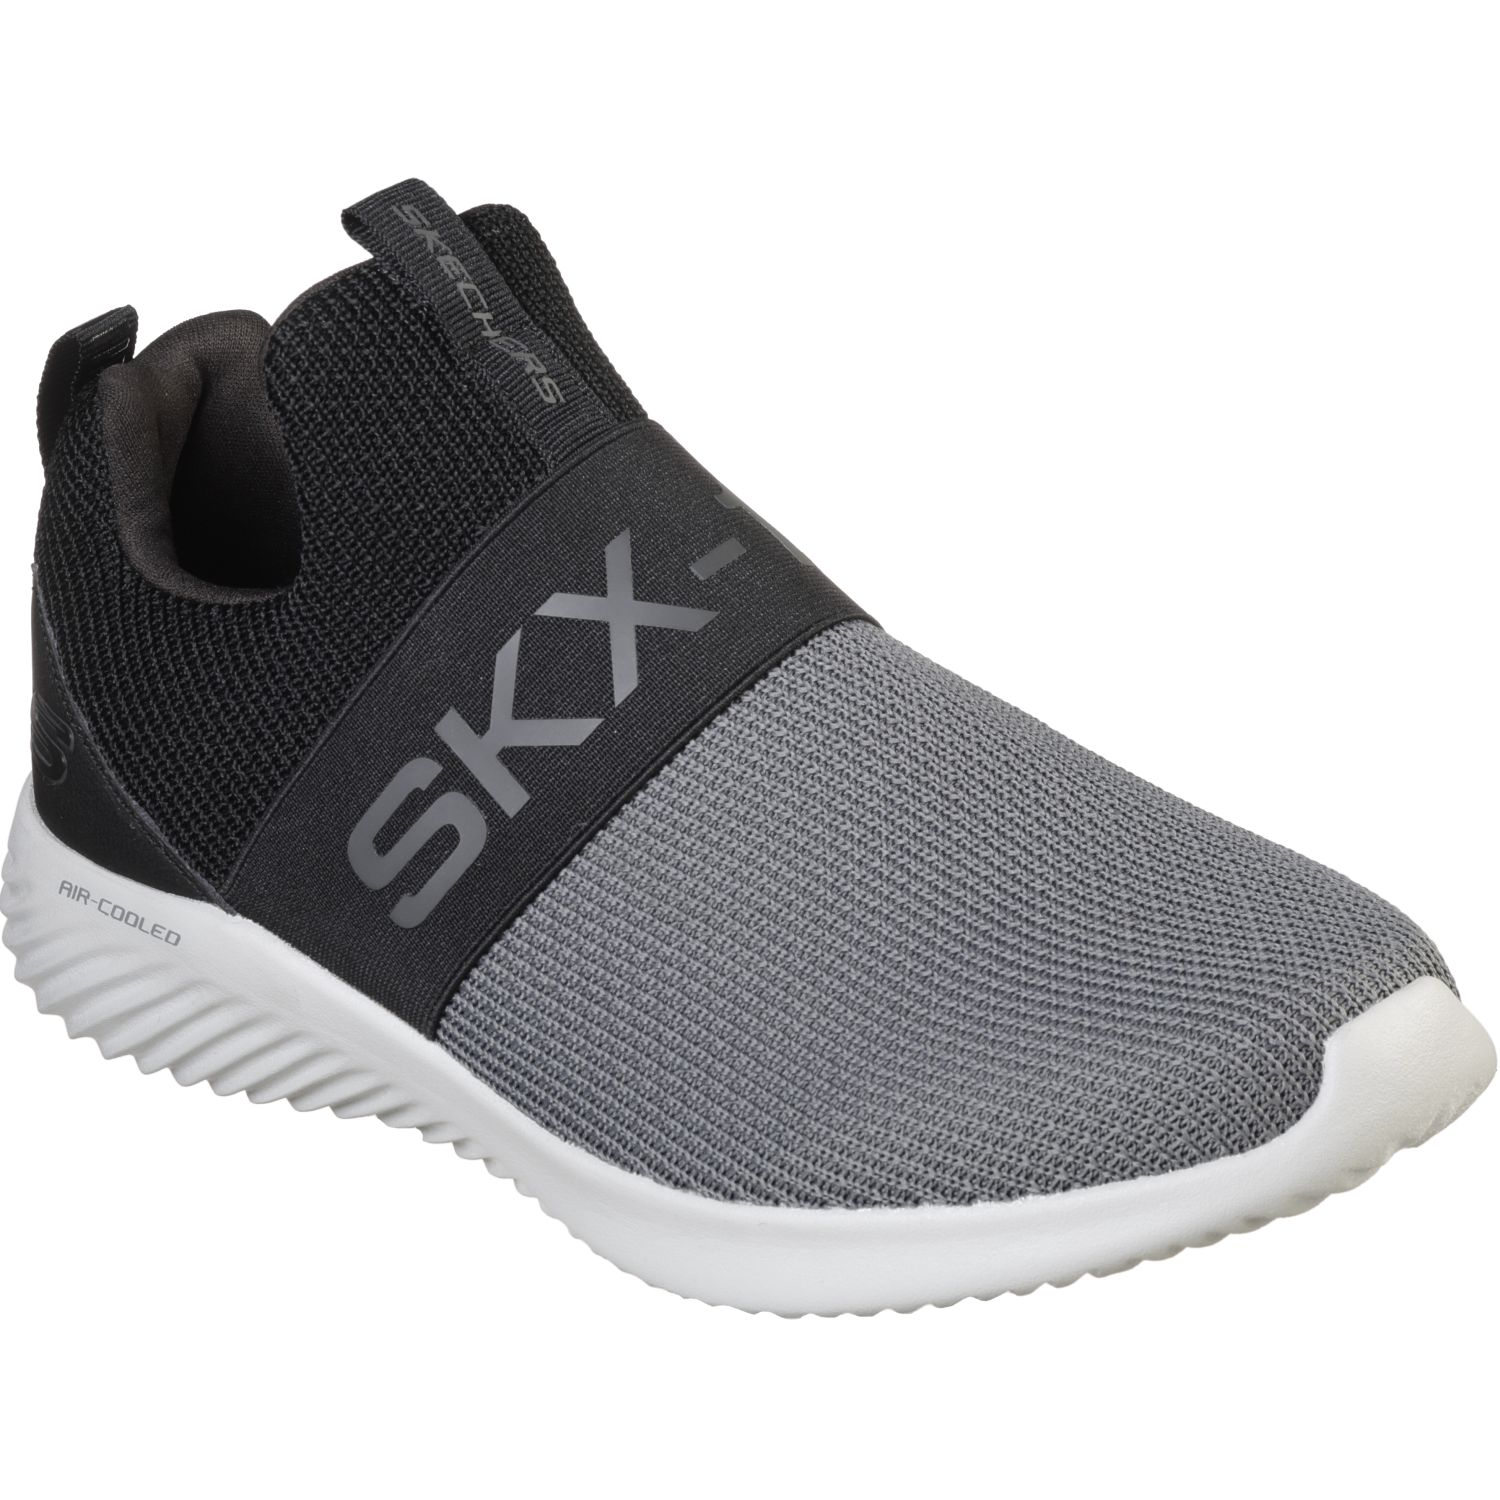 Skechers Bounder Gris / negro Walking